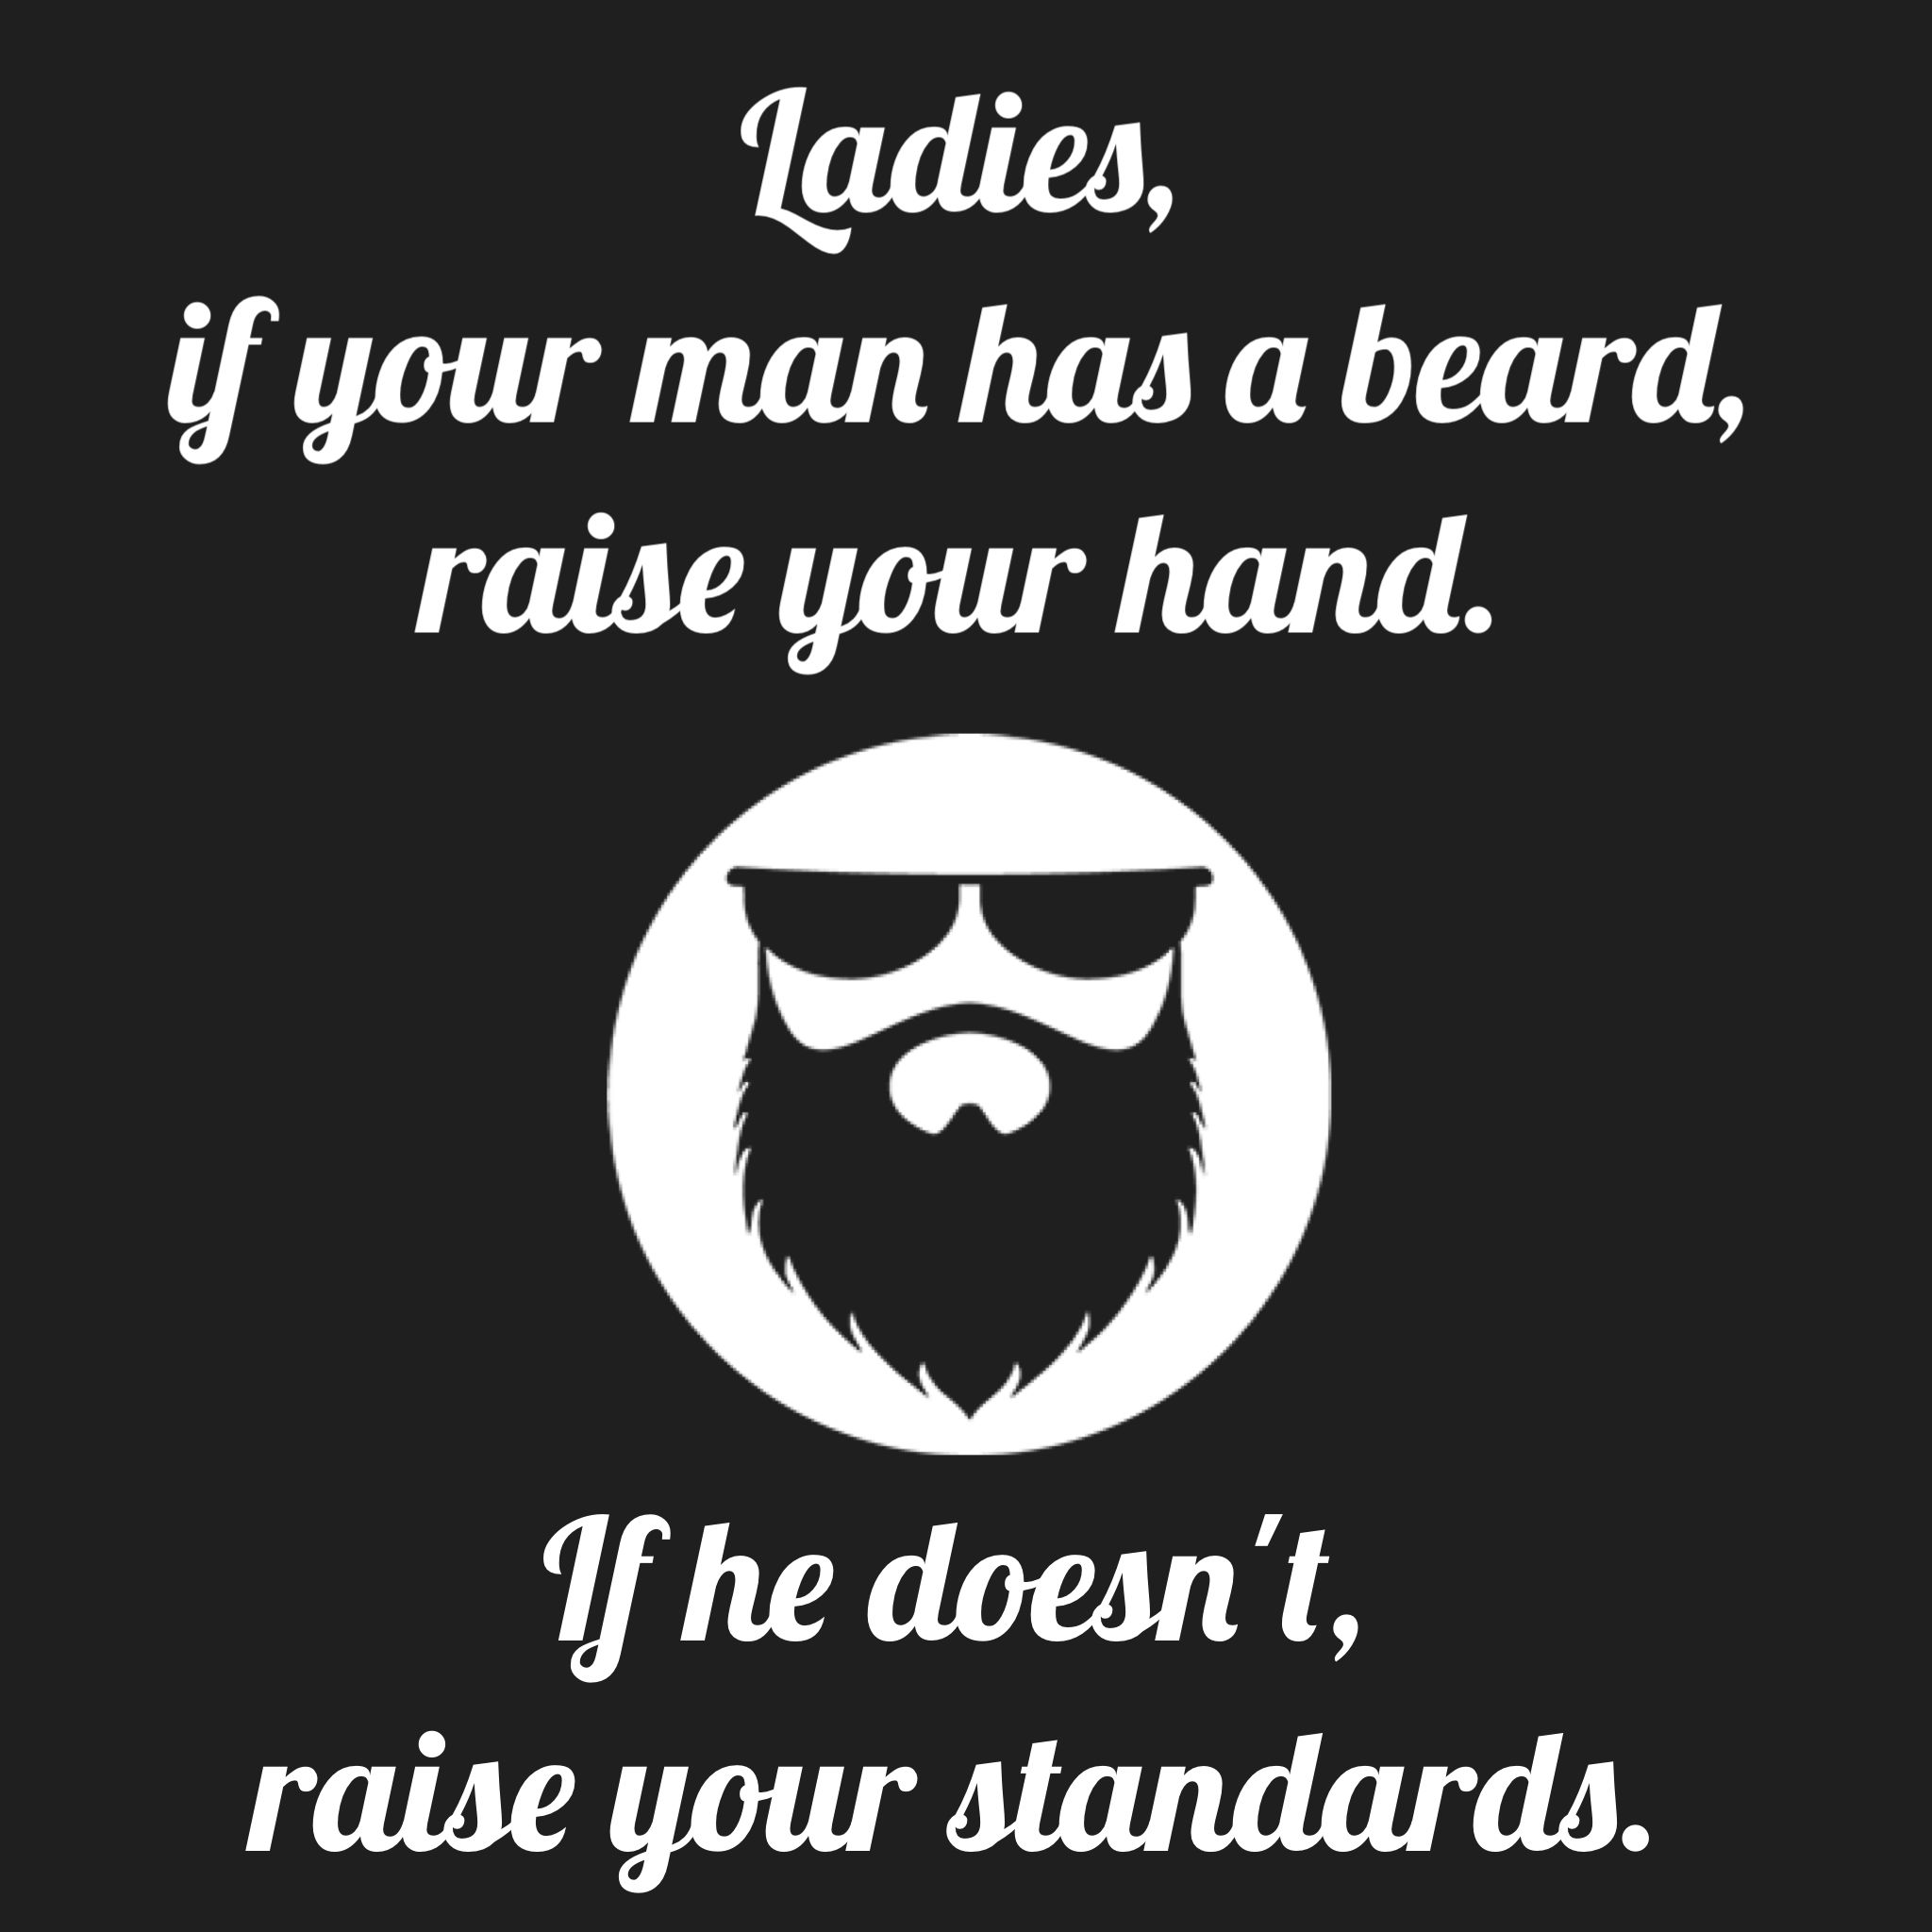 578fcc82 Ladies, if your man has a beard, raise your hand. If he doesn't, raise your  standards. #beard #quote